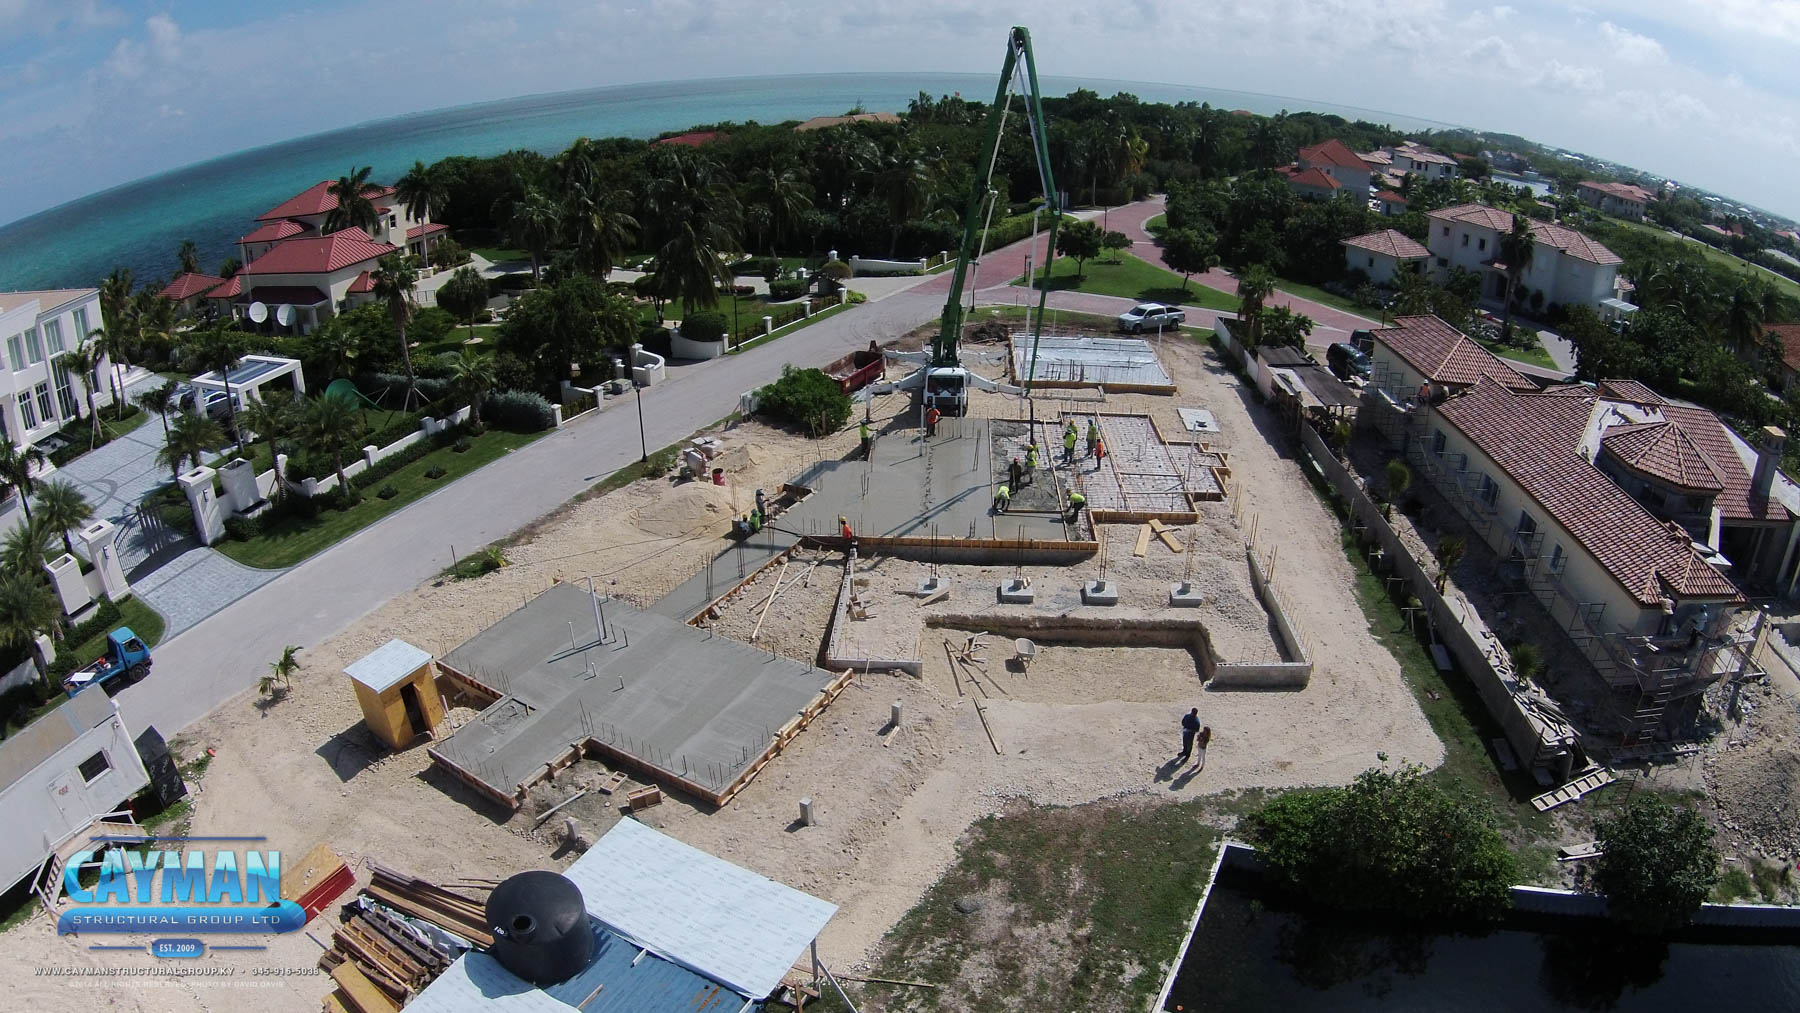 Cayman Structural Group New Home Construction In Vista Del Mar Cayman Structural Group